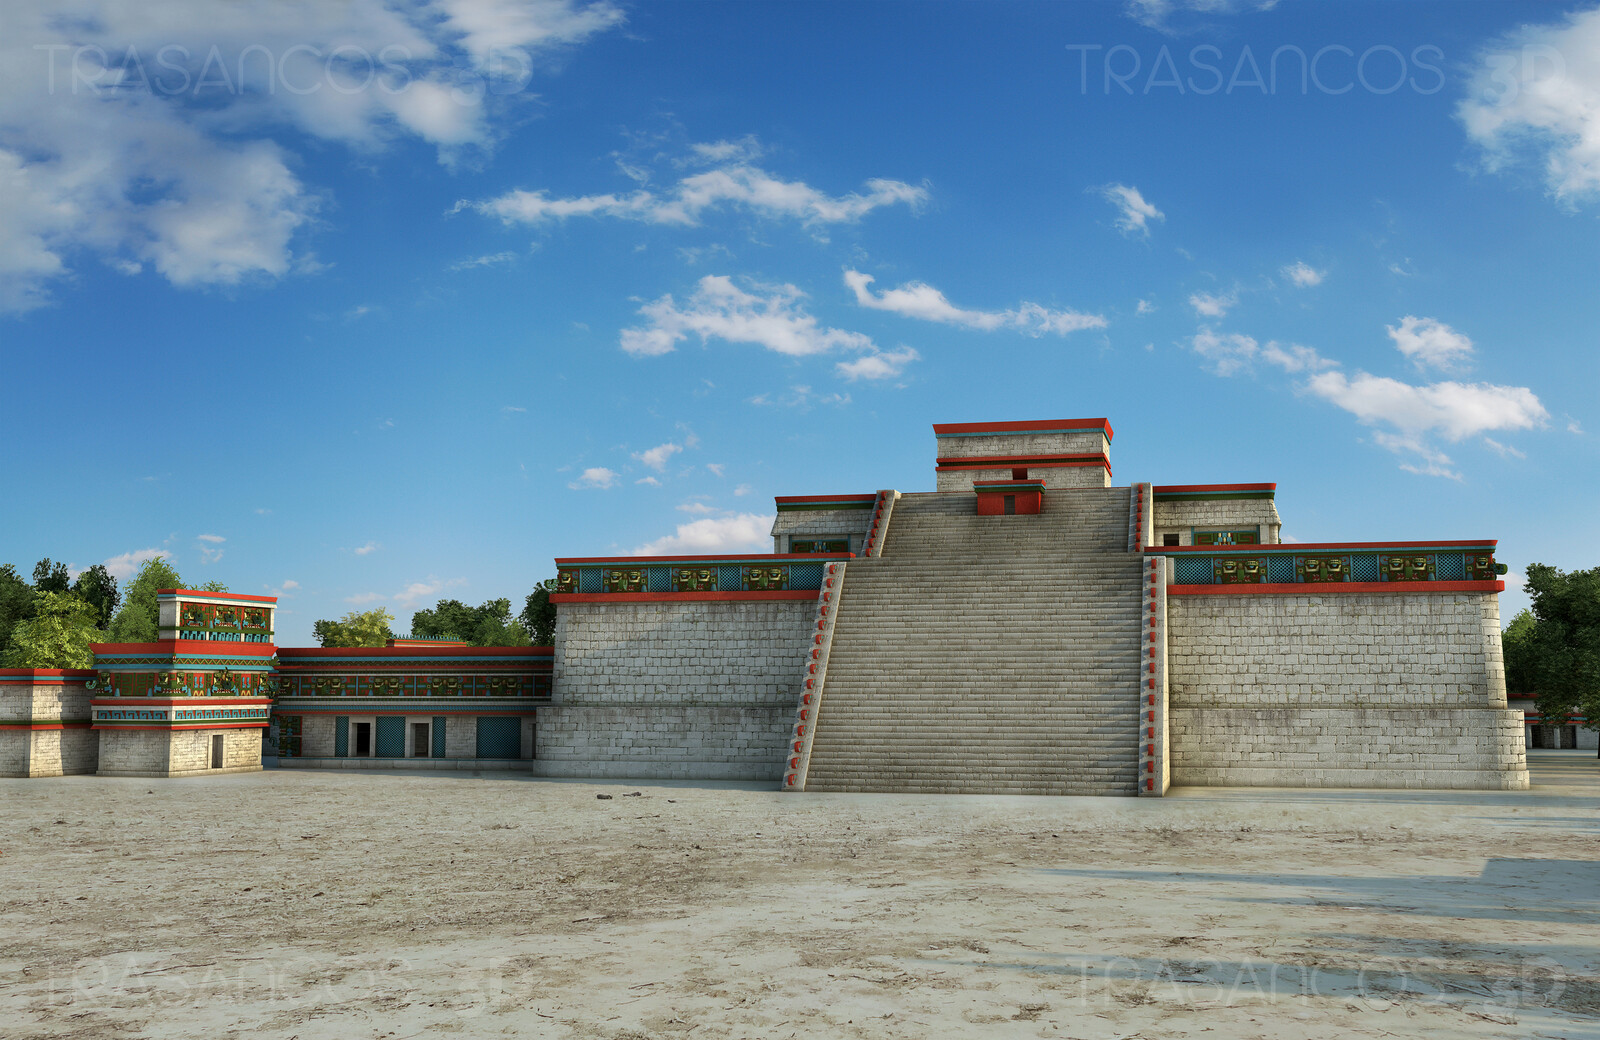 The 'Monjas' (Nuns) and 'Iglesia' (Church) complex in Chichen Itza. Modeled in collaboration with: - Diego Blanco